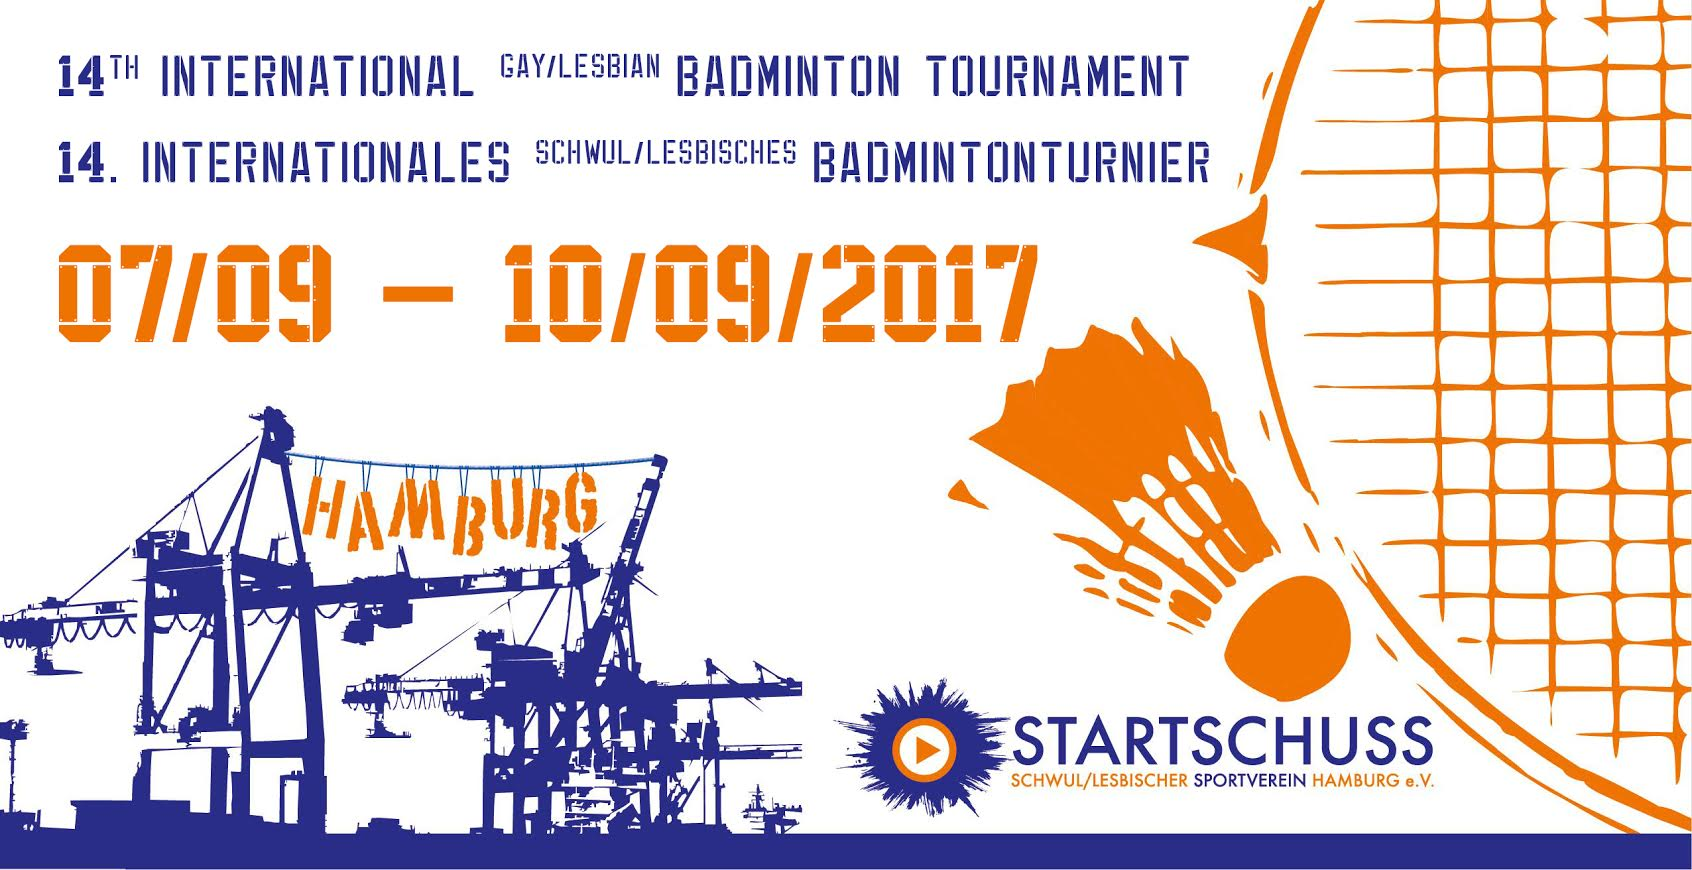 Flyer Badminton Tournament Hamburg 2017 Agenda & Locations